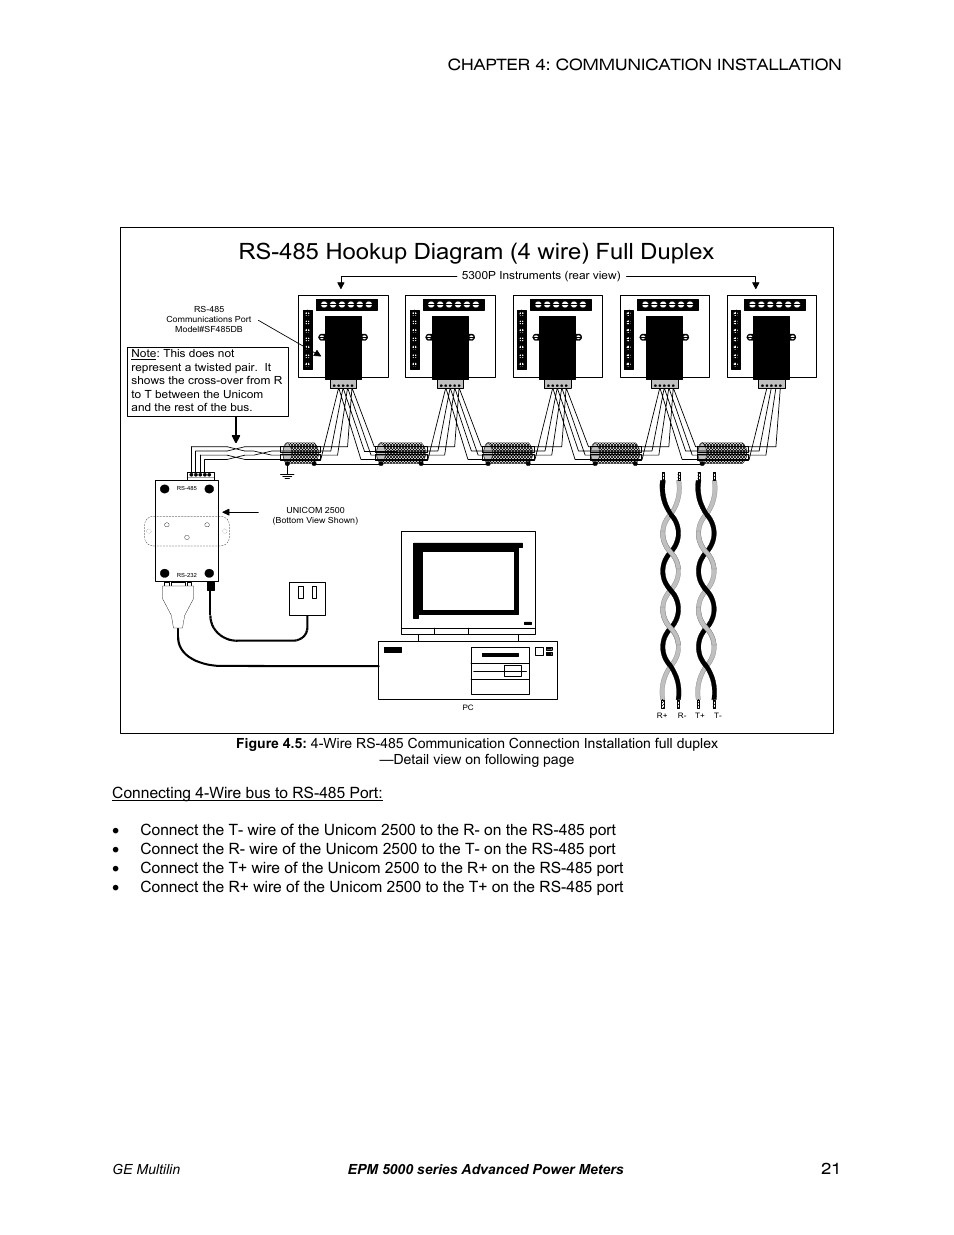 medium resolution of rs 485 hookup diagram 4 wire full duplex ge epm 5200 user manual page 25 100